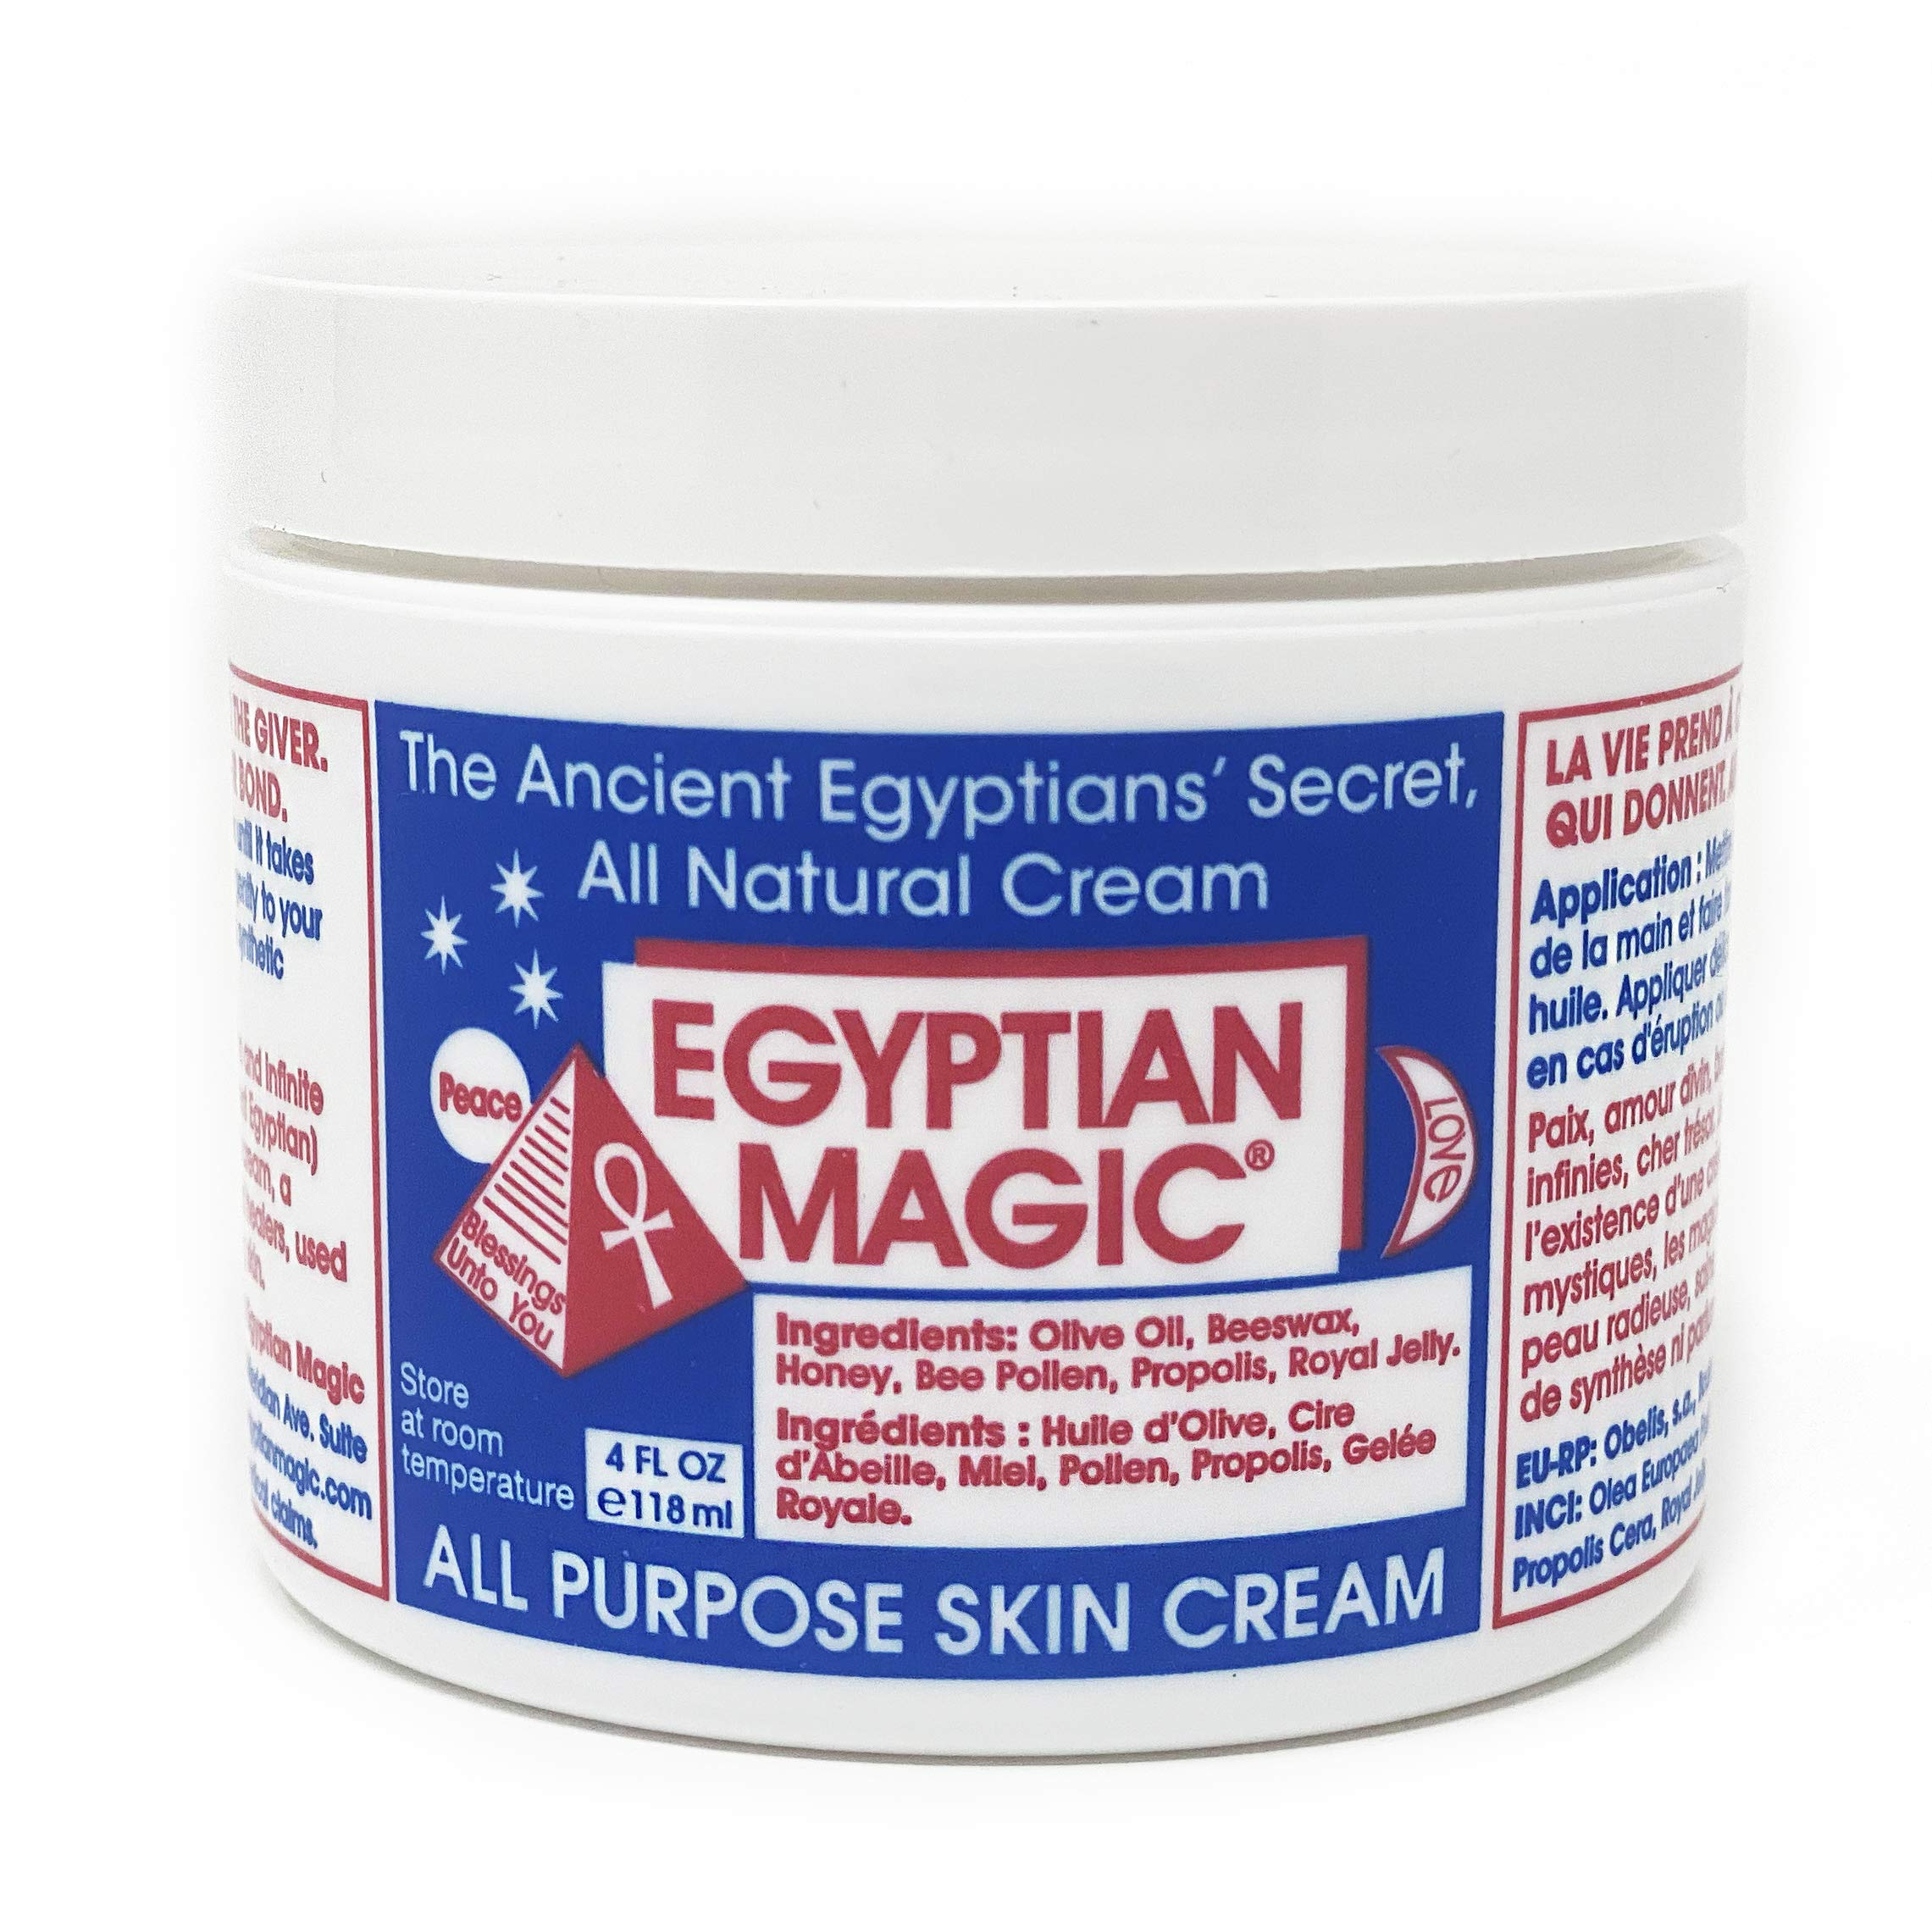 Egyptian Magic EMG10006 All Purpose Skin Cream Skin, Hair, Anti Aging, Stretch Marks All Natural Ingredients 4 Ounce Jar, 4 Ounce, Clear